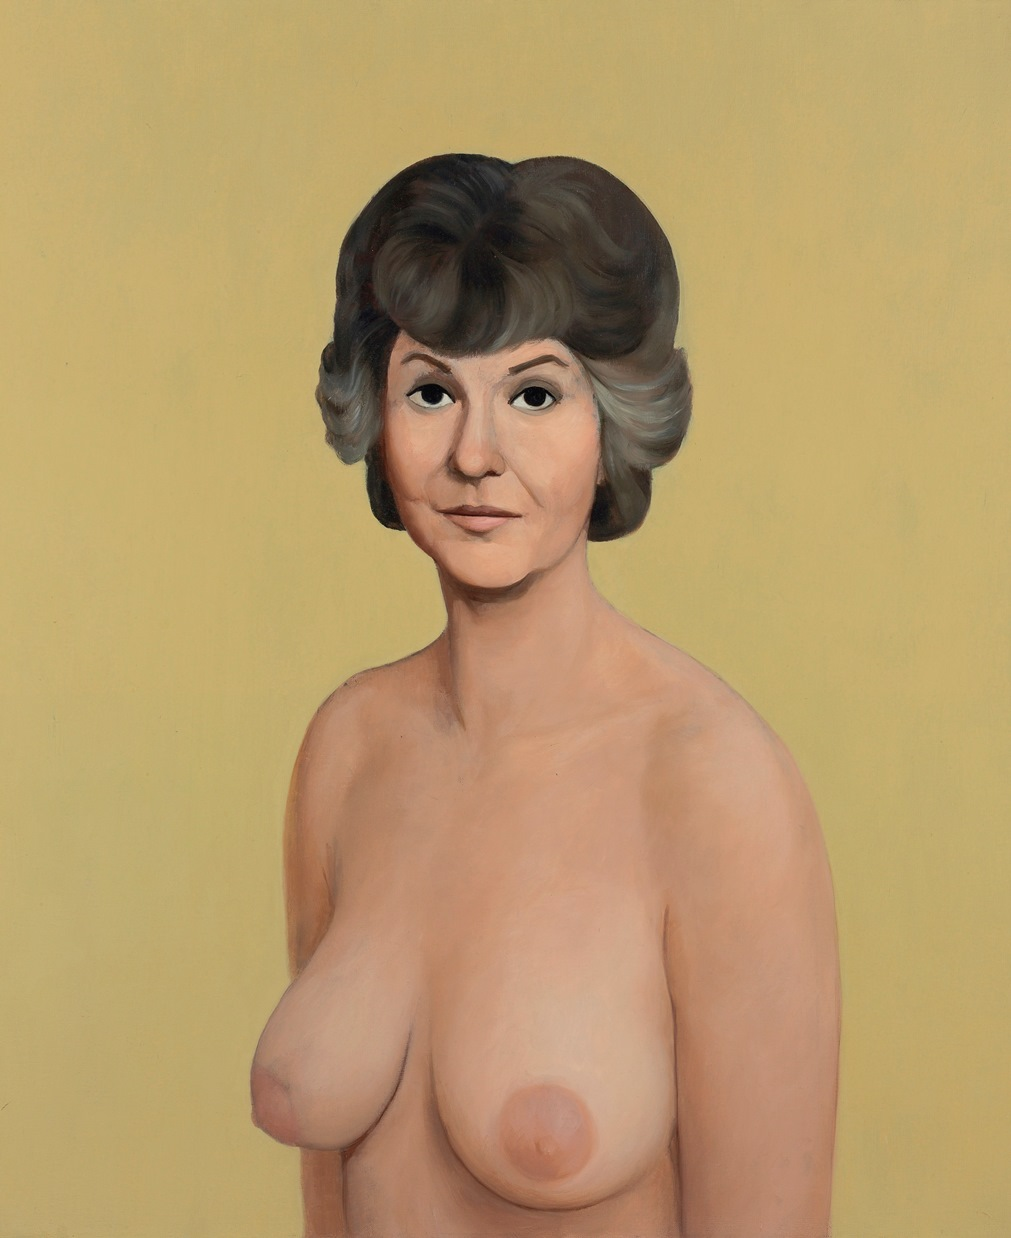 Garfunkel And Oates Nude for tableau your mind: bea arthur: thanks for the mammaries